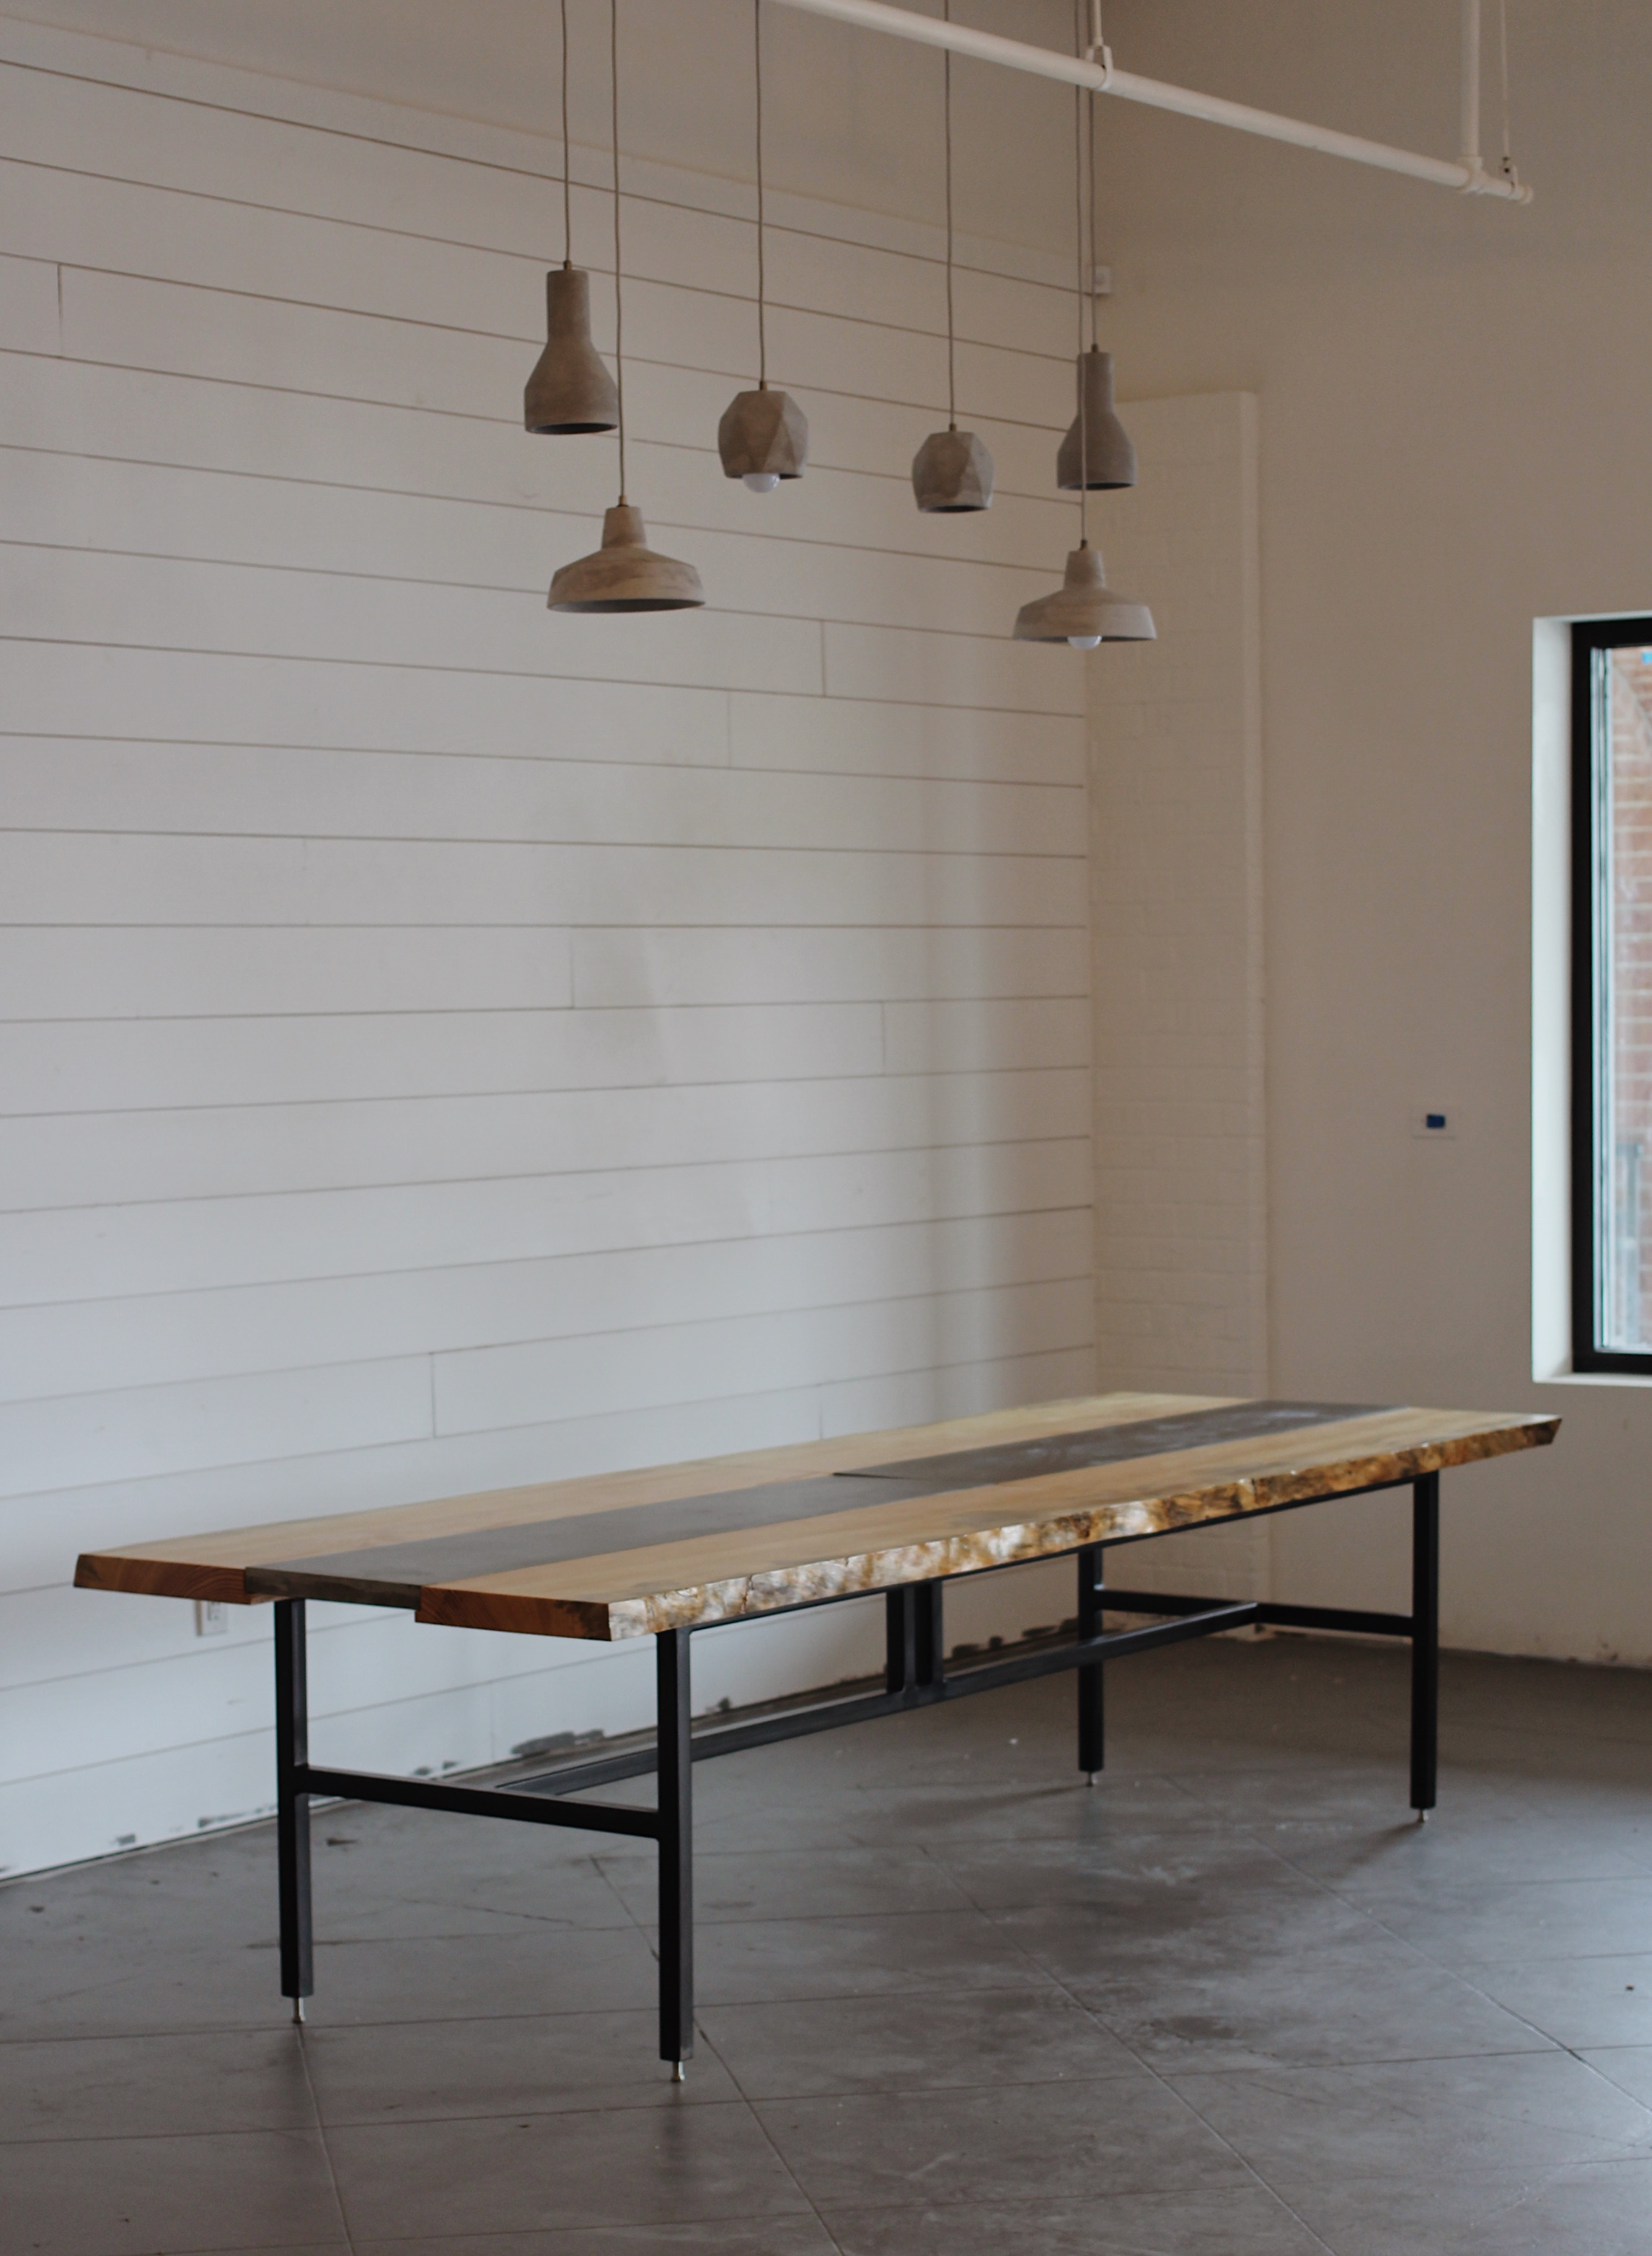 SLAB + CONCRETE TABLE / LIGHT HOUSE COFFEE